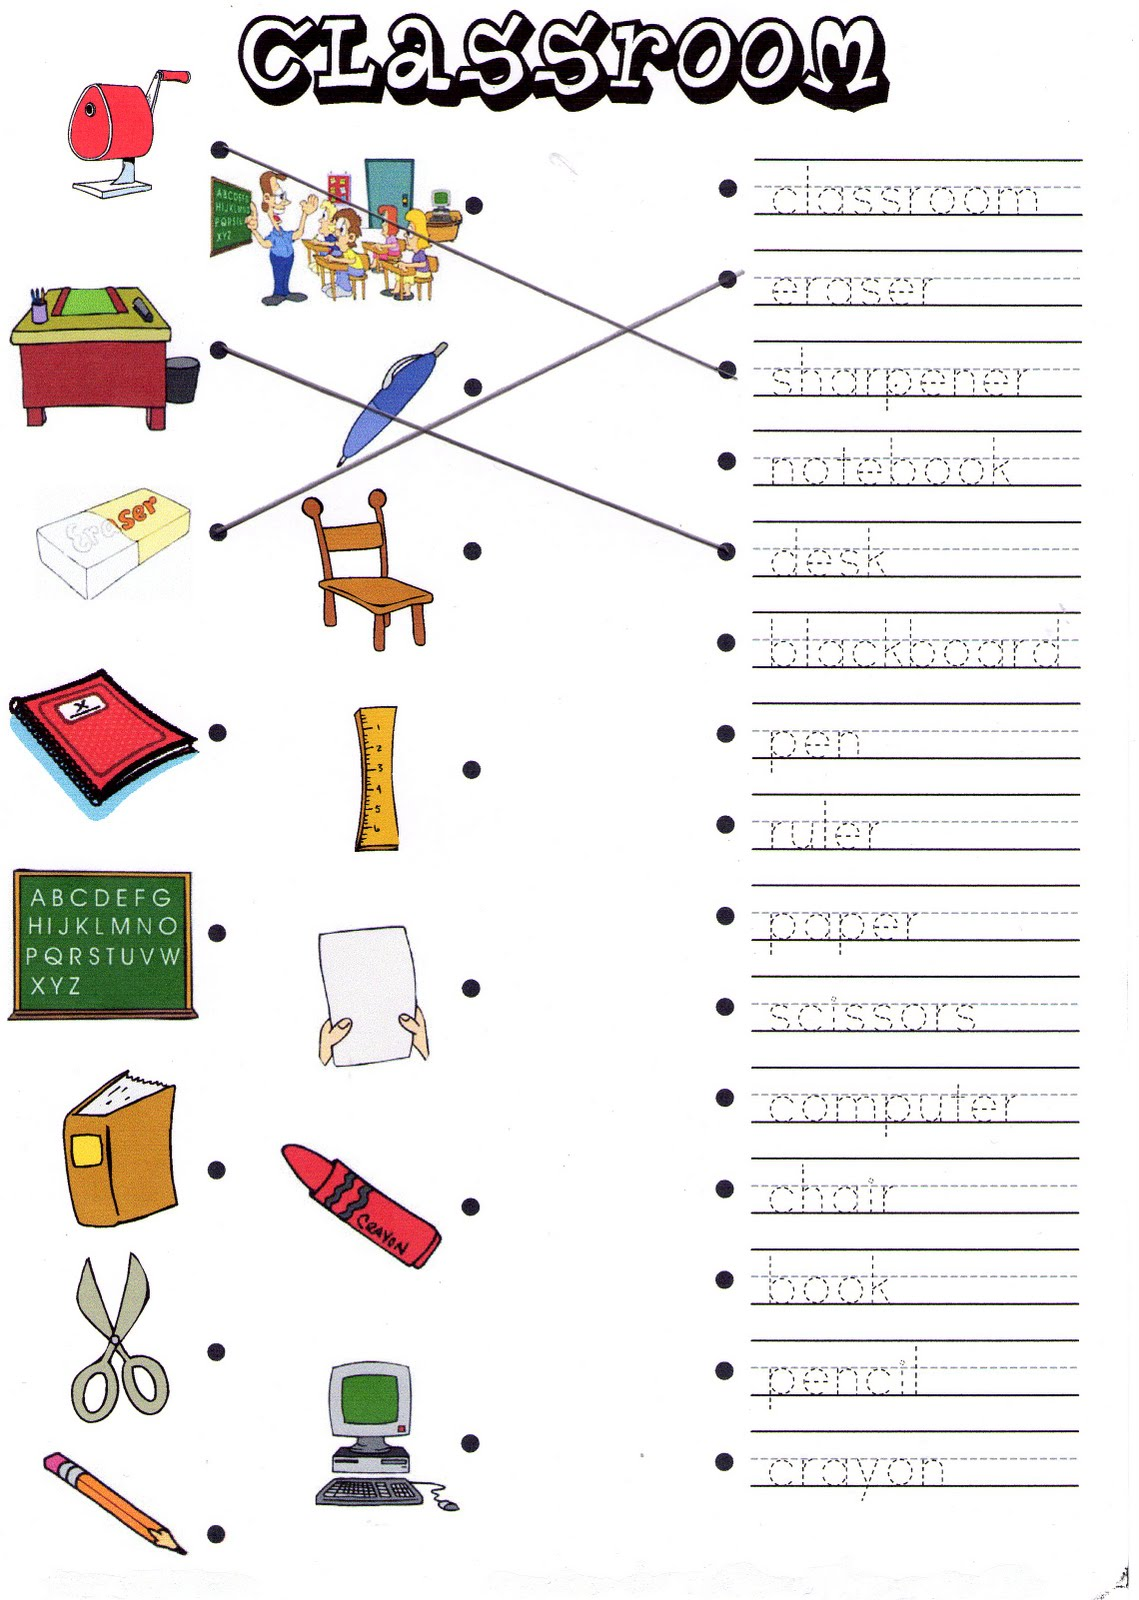 Spanish Classroom Objects Worksheet The Best Worksheets Image